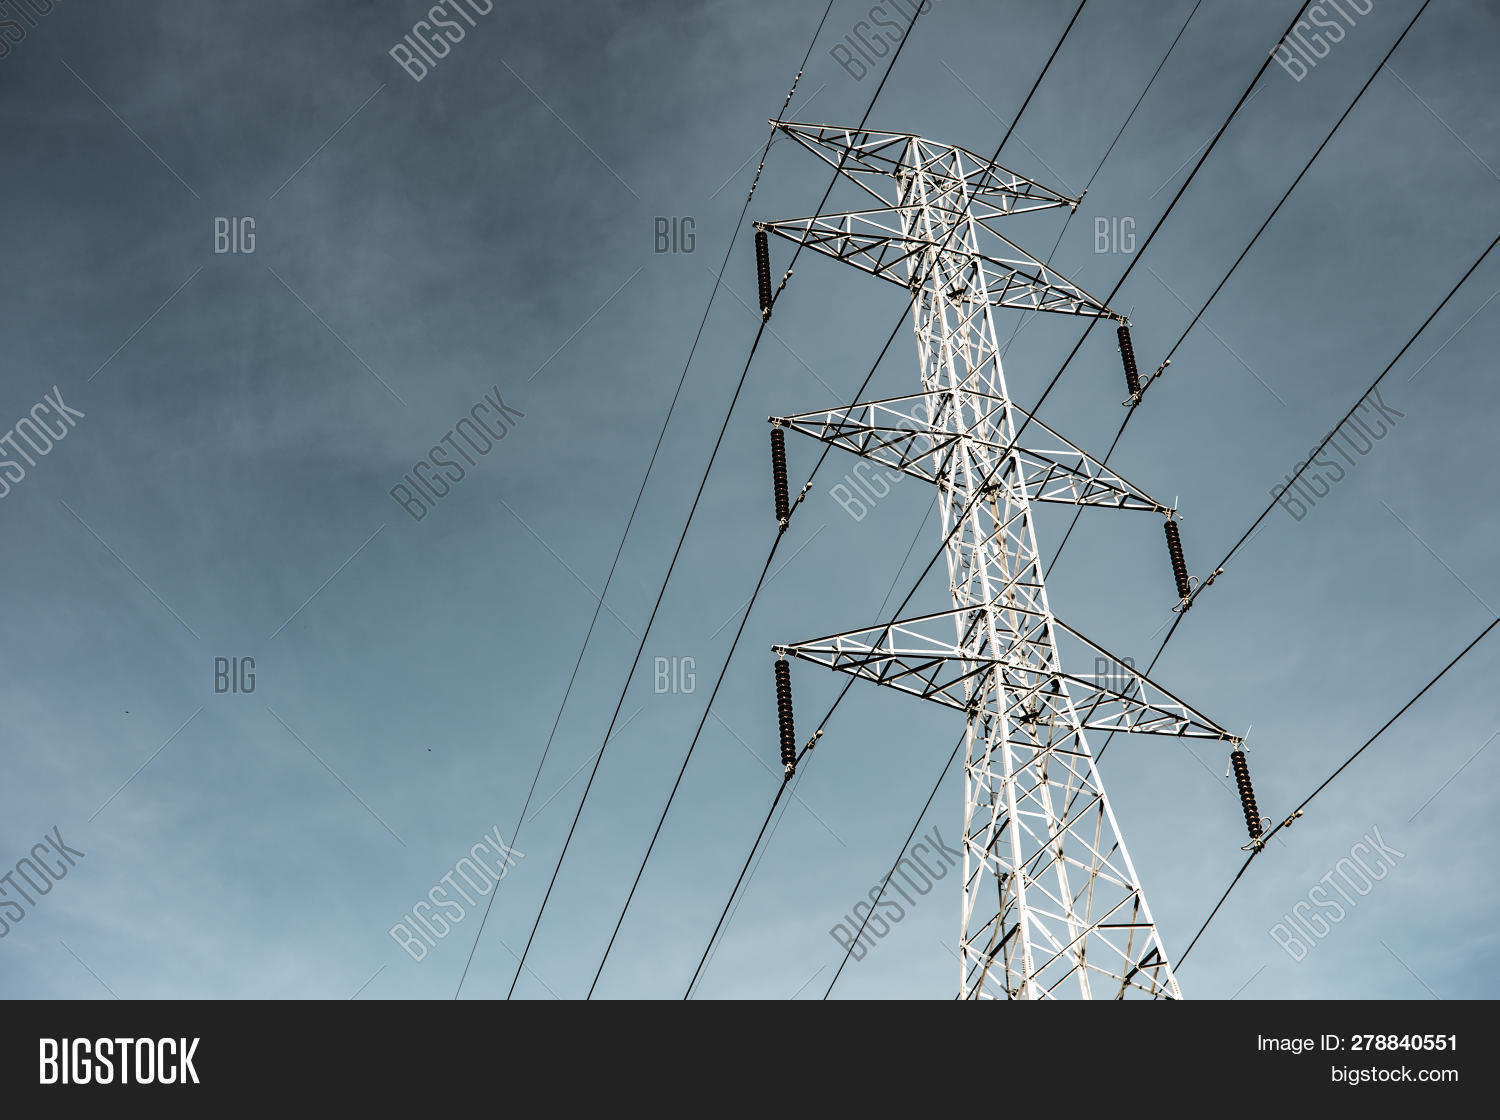 architecture,background,beautiful,cables,clouds,communication,construction,distribution,electric,electrical,electricity,energy,engineering,environment,equipment,field,forest,green,grid,high,industrial,industry,infrastructure,landscape,line,meadow,natural,nature,old,plant,pole,post,power,pylon,road,row,rural,sky,summer,supply,system,technology,transformer,transmission,tree,utility,volt,voltage,wood